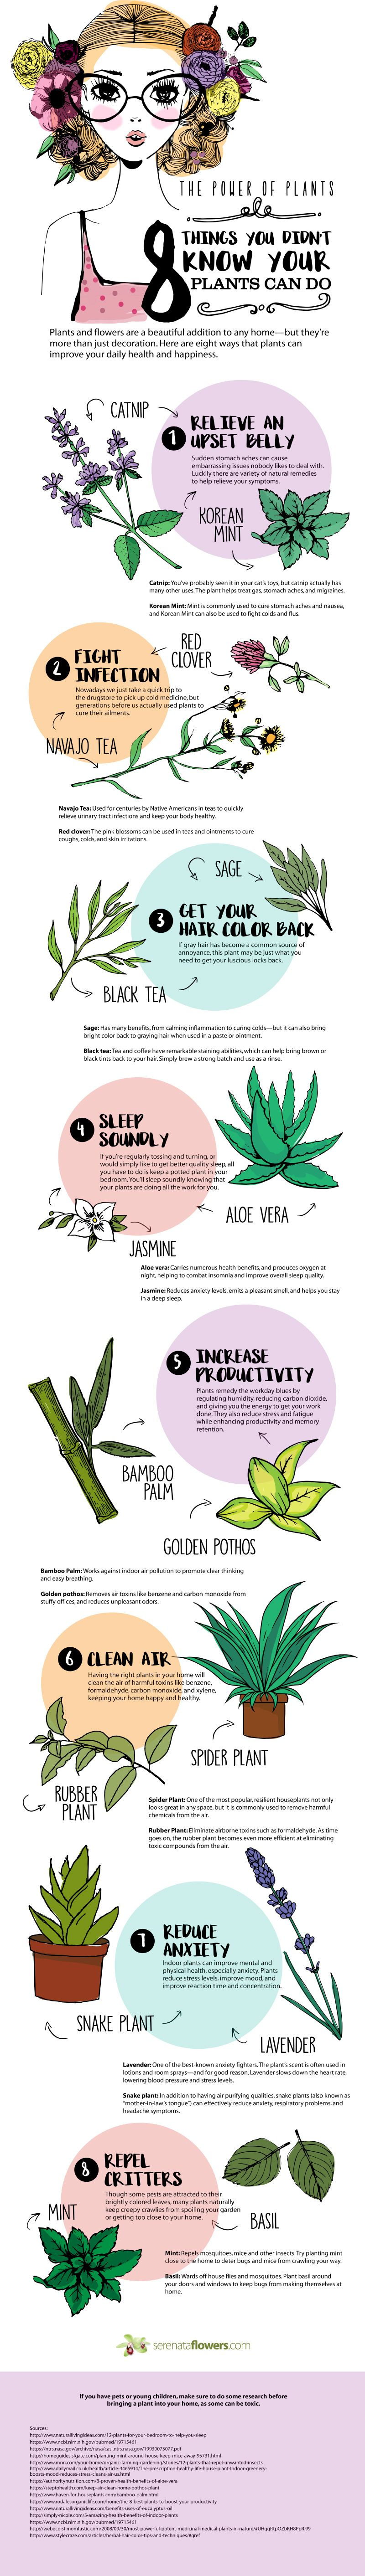 8 Things you Didn't Know your Plants Can Do #Infographic